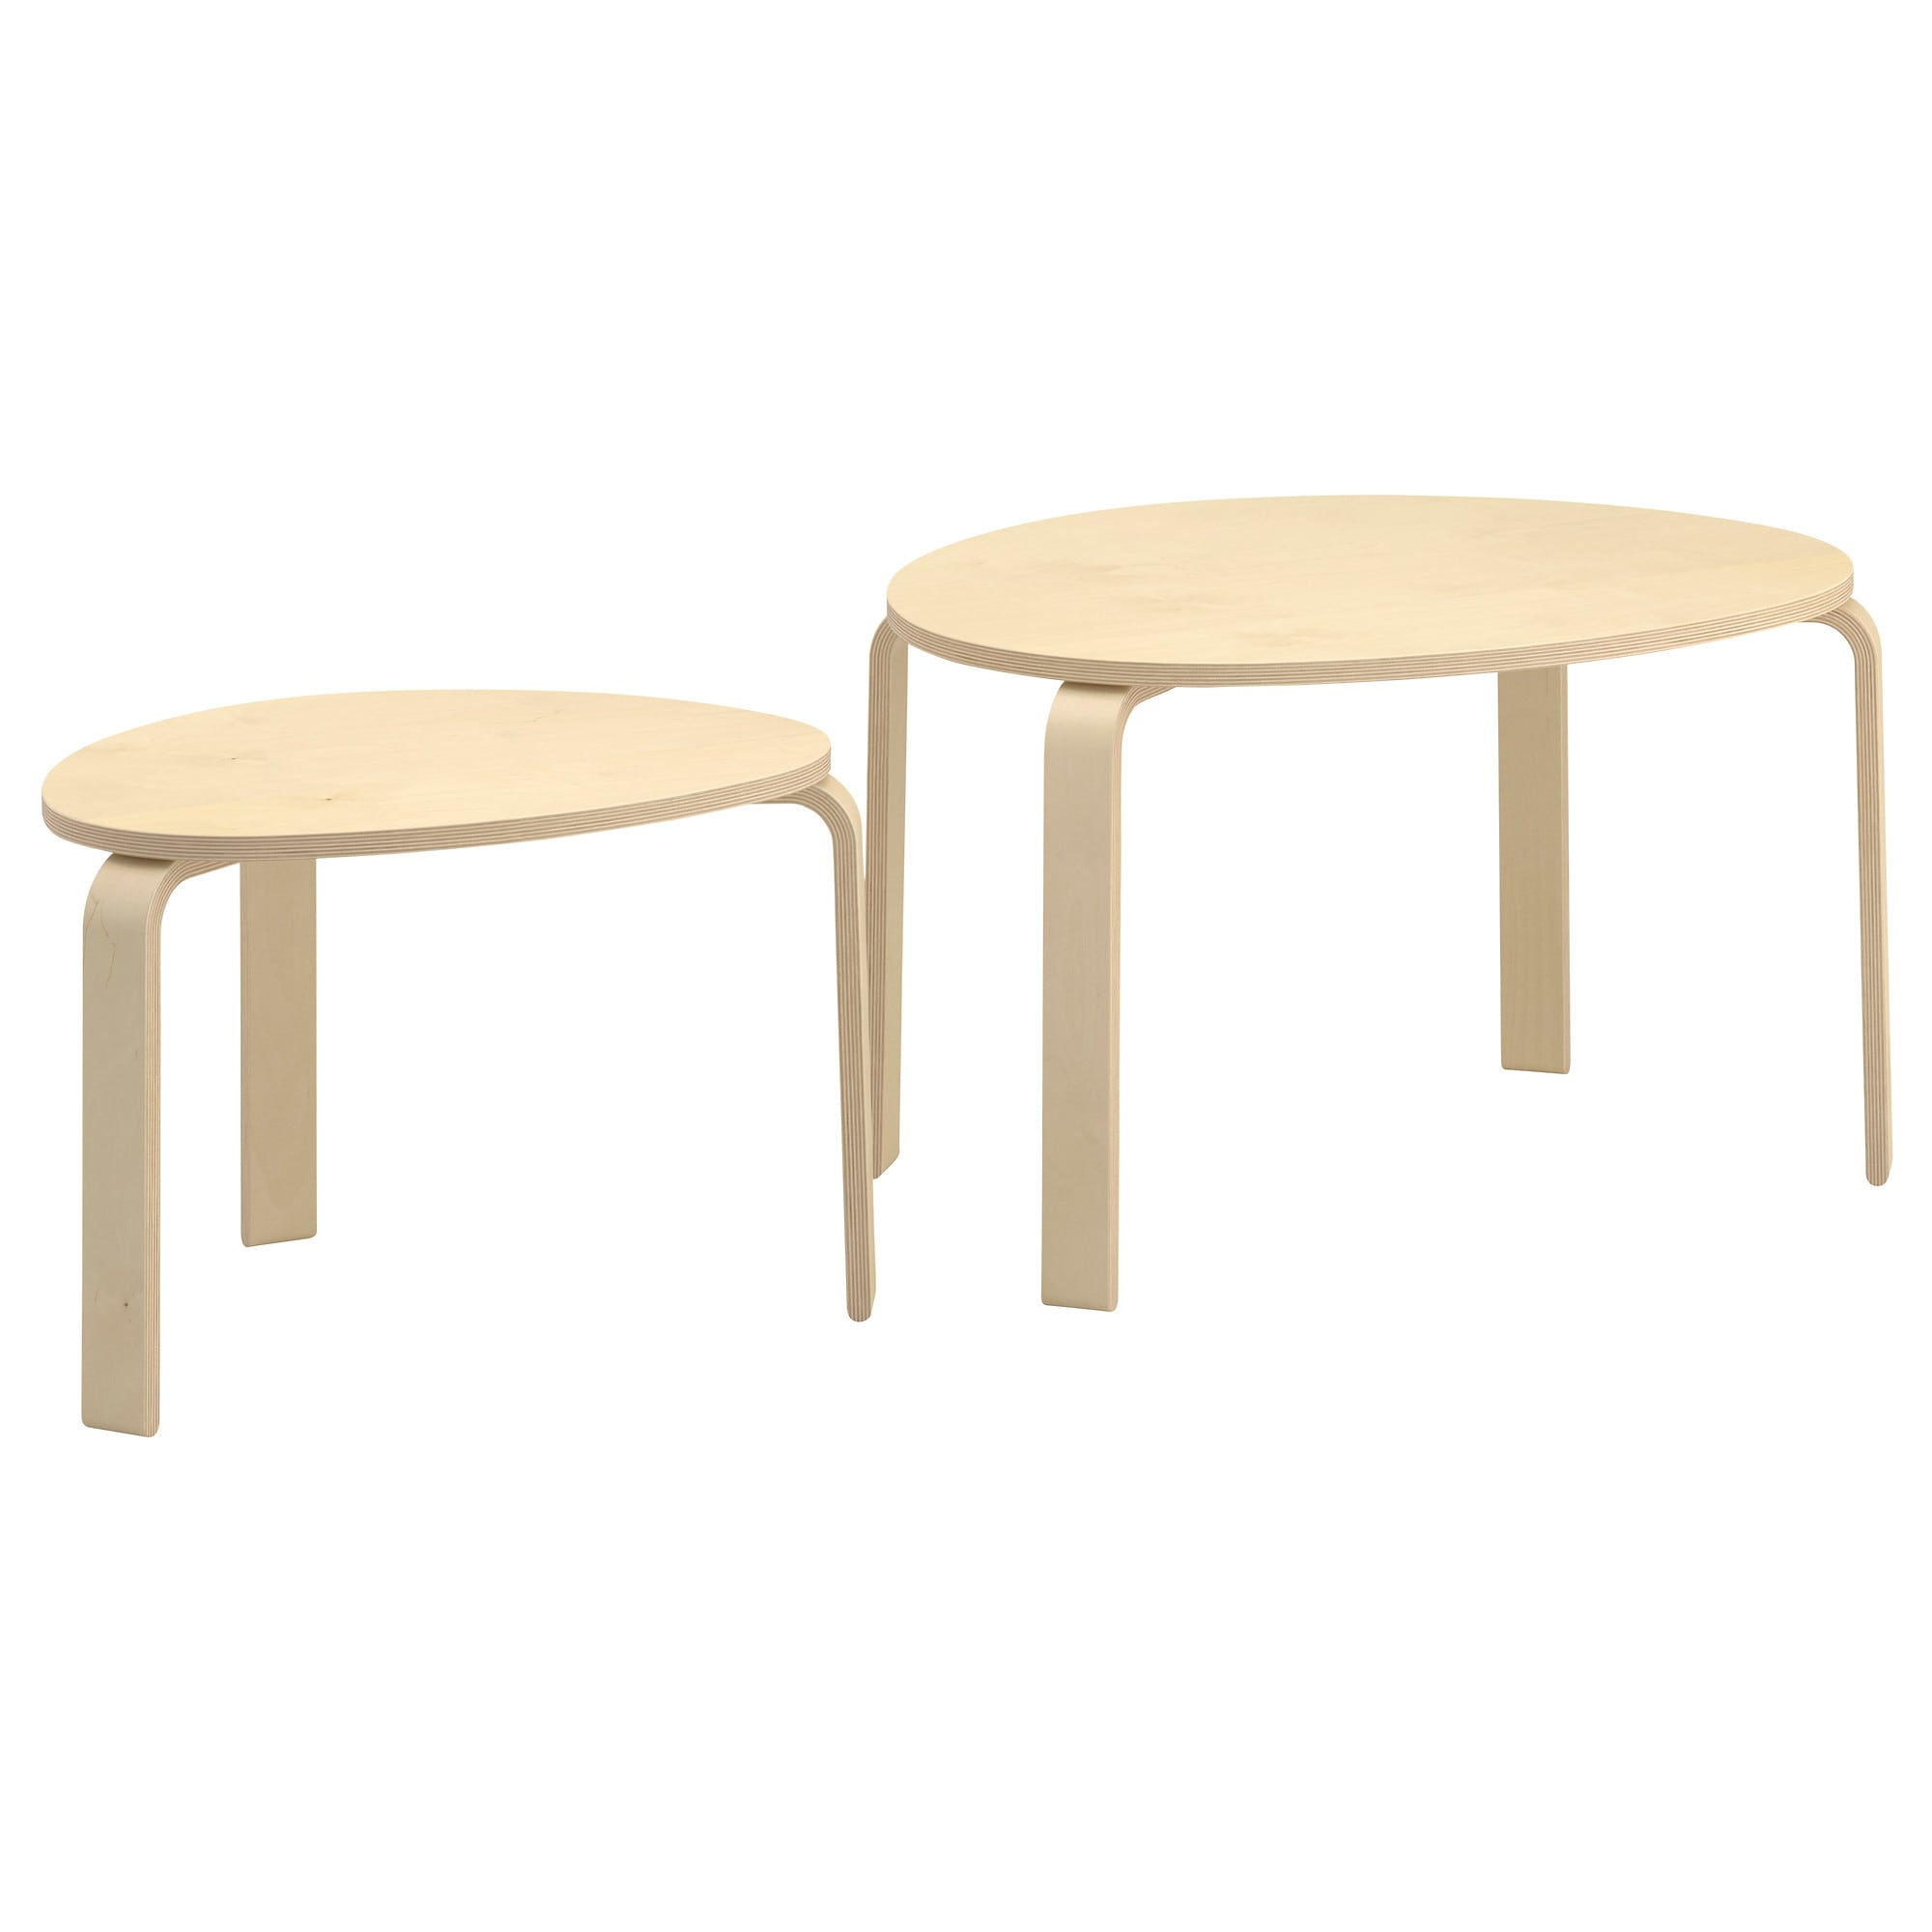 Svalsta Nest Of Tables, Set Of 2 Birch Veneer – Ikea With Most Recent Set Of Nesting Coffee Tables (Gallery 18 of 20)